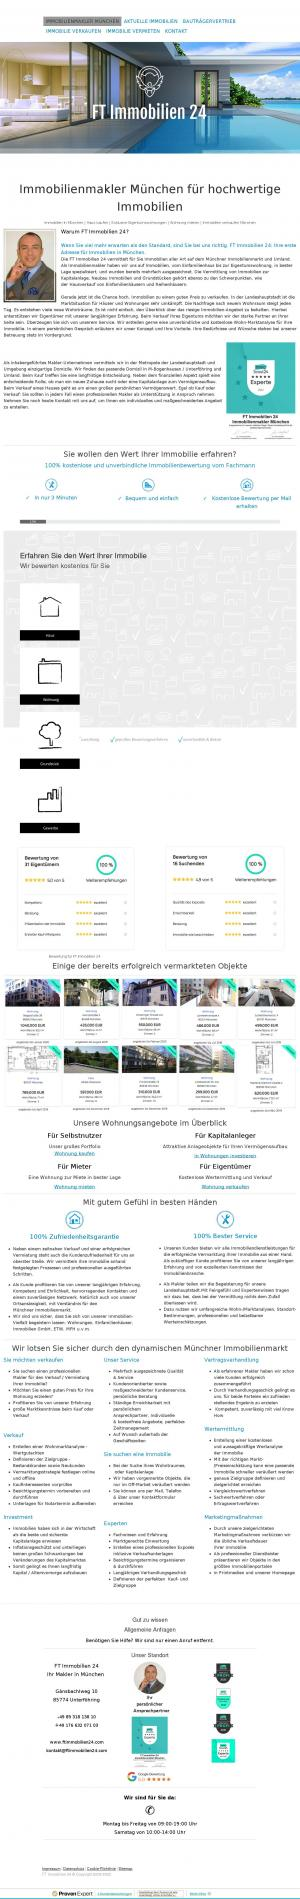 www.ftimmobilien24.com